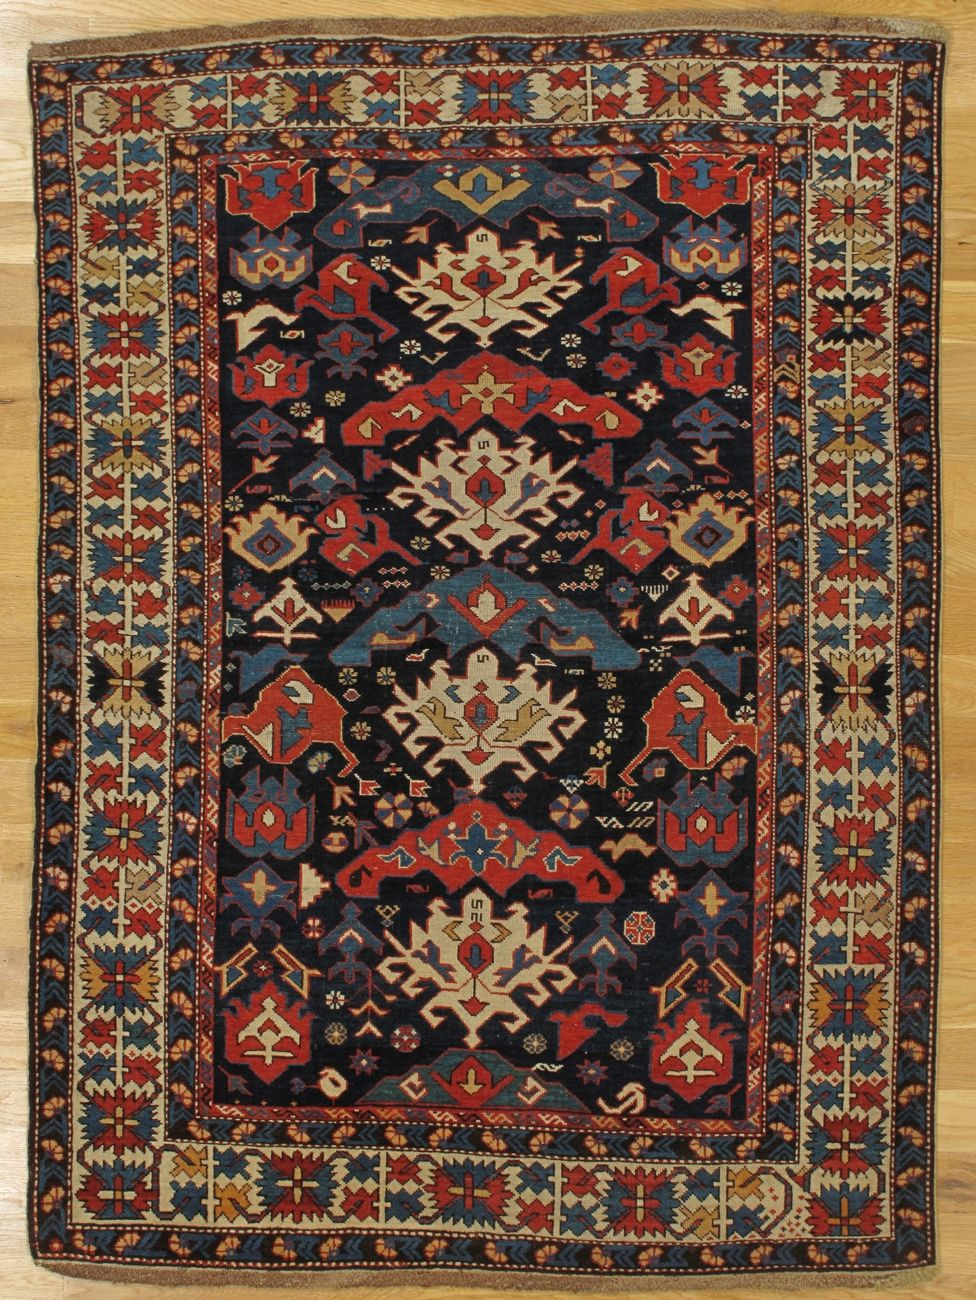 Bidjow Rug From Eastern Caucasus Age Circa 1875 Size 5 6 X3 11 168x119 Cm Sold Rugs Antique Rugs Rugs On Carpet